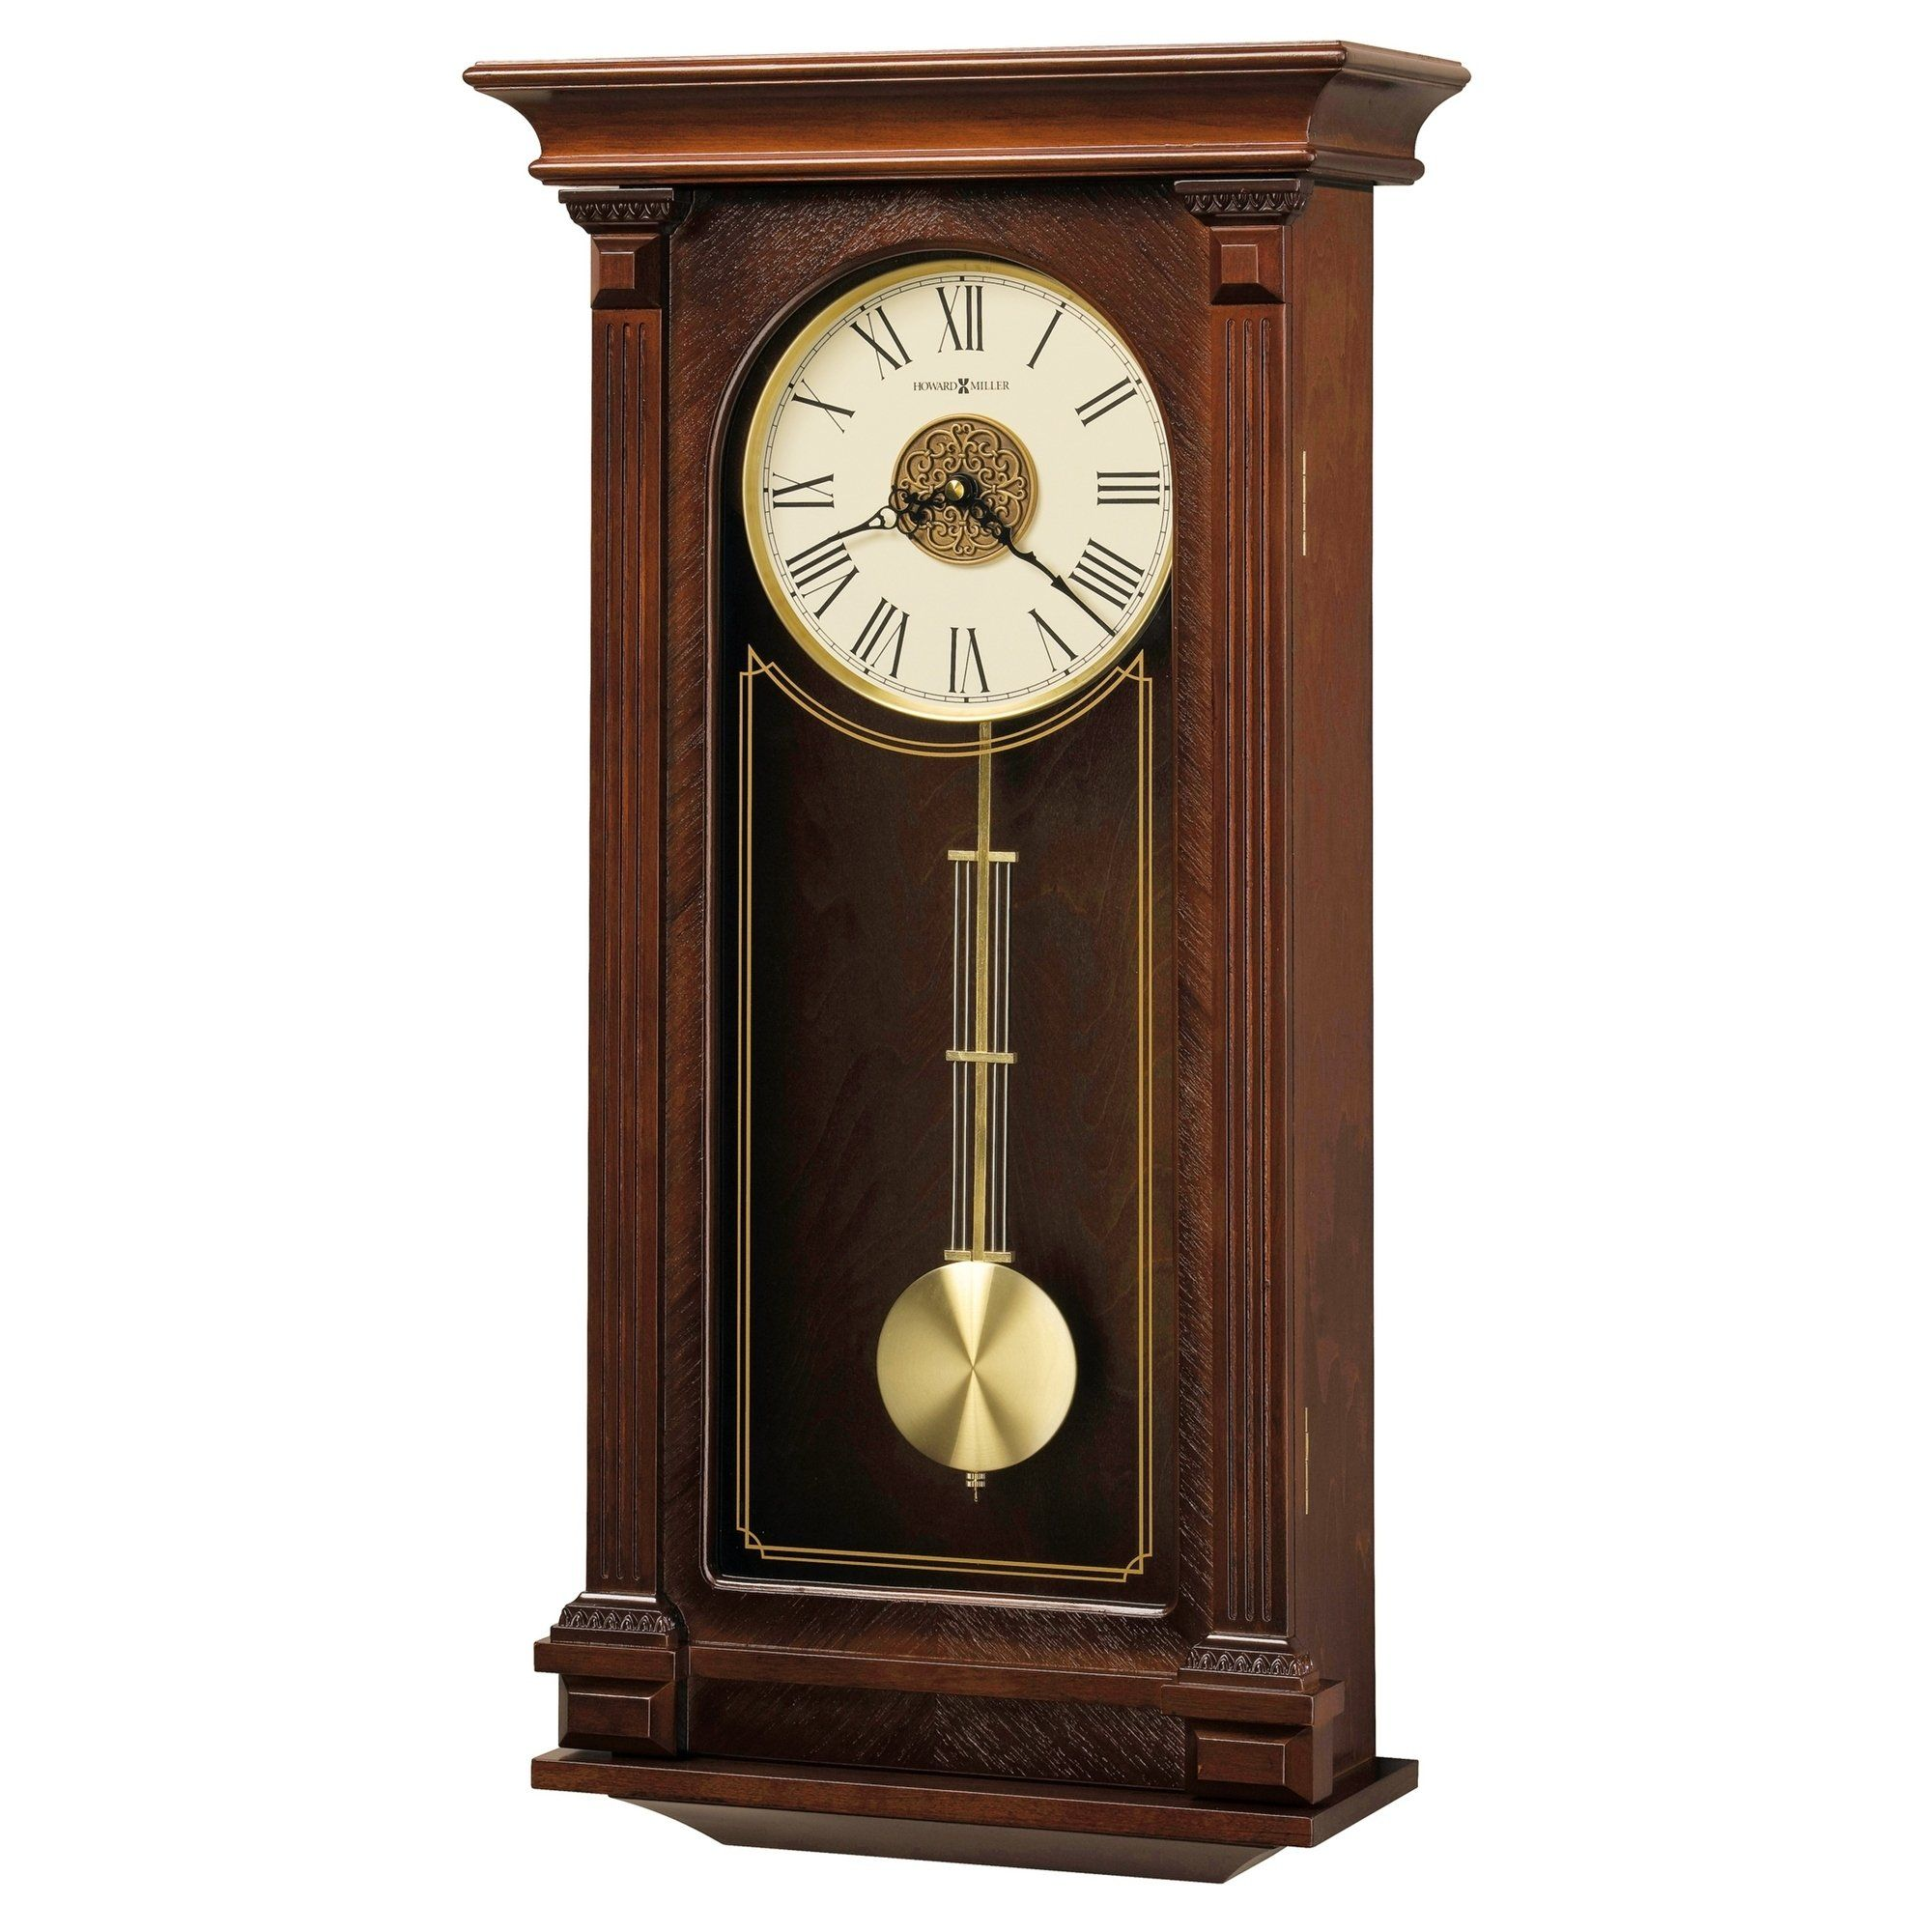 Howard Miller Sinclair Grandfather Clock Style Chiming Wall Clock With Pendulum Charming Vintage Old World Classic Design Chiming Wall Clocks Clock Grandfather Clock